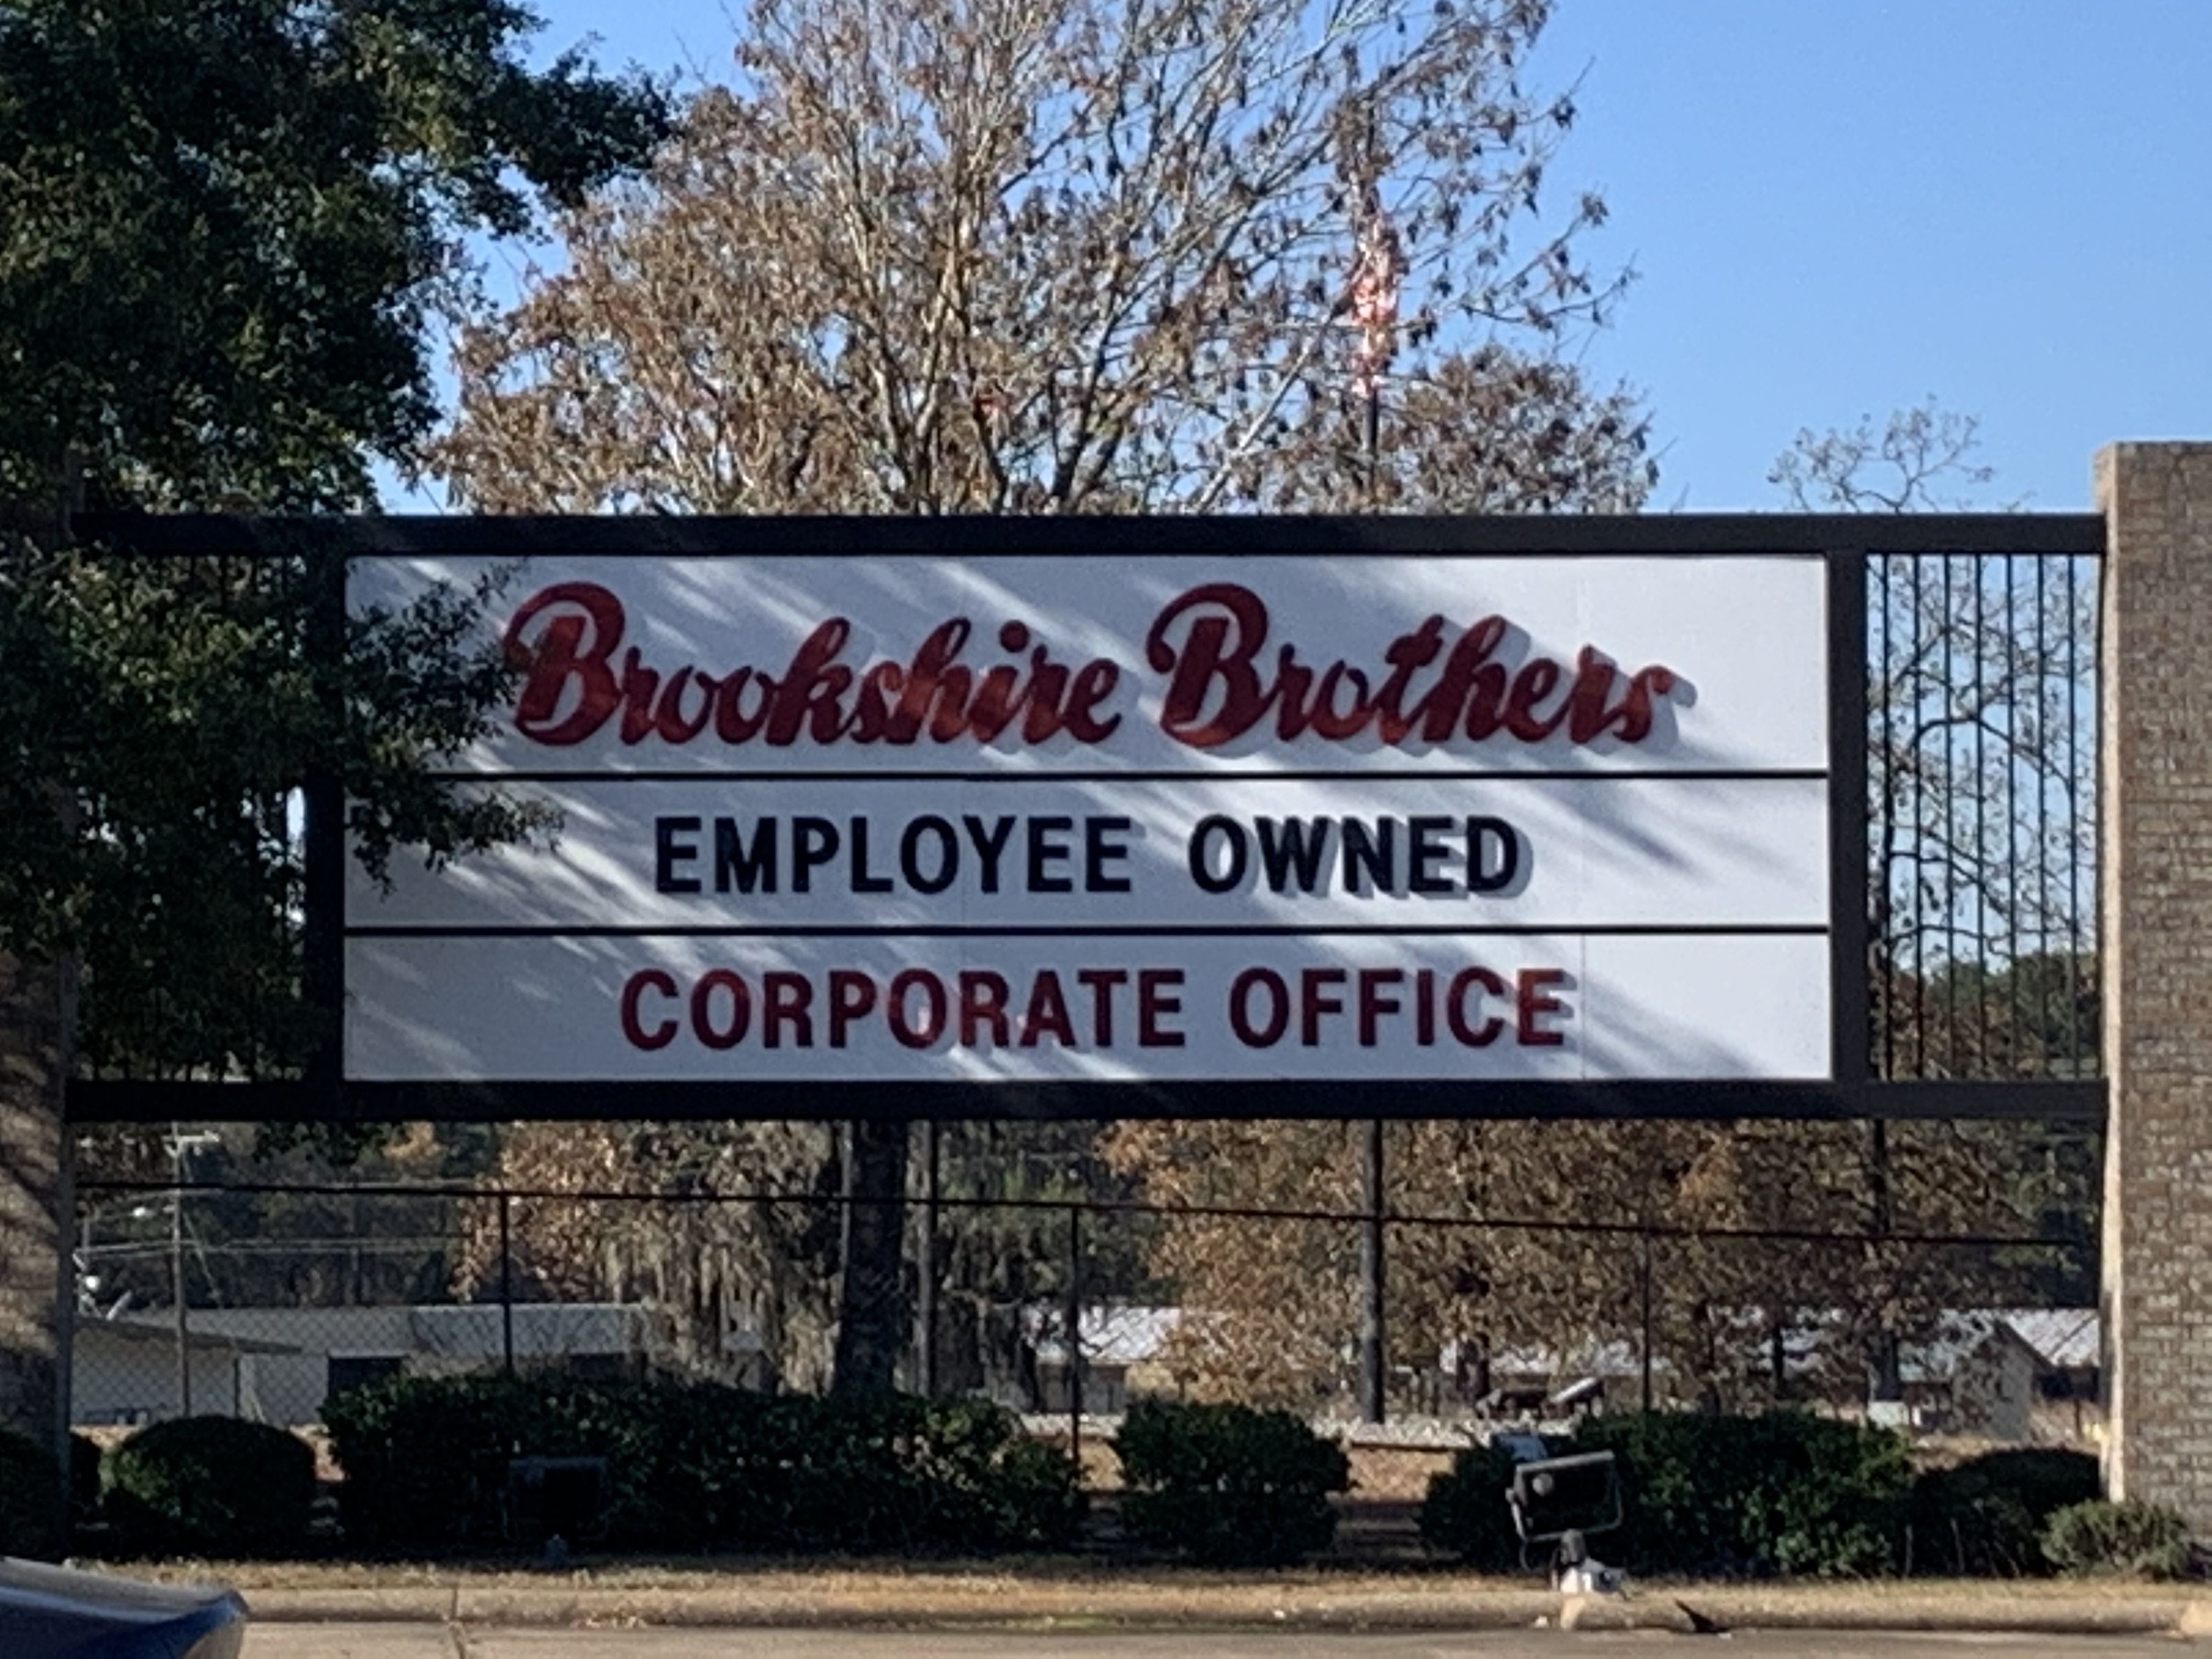 NCB closes $11.1 million loan to Brookshire Brothers Holding Company, Inc.